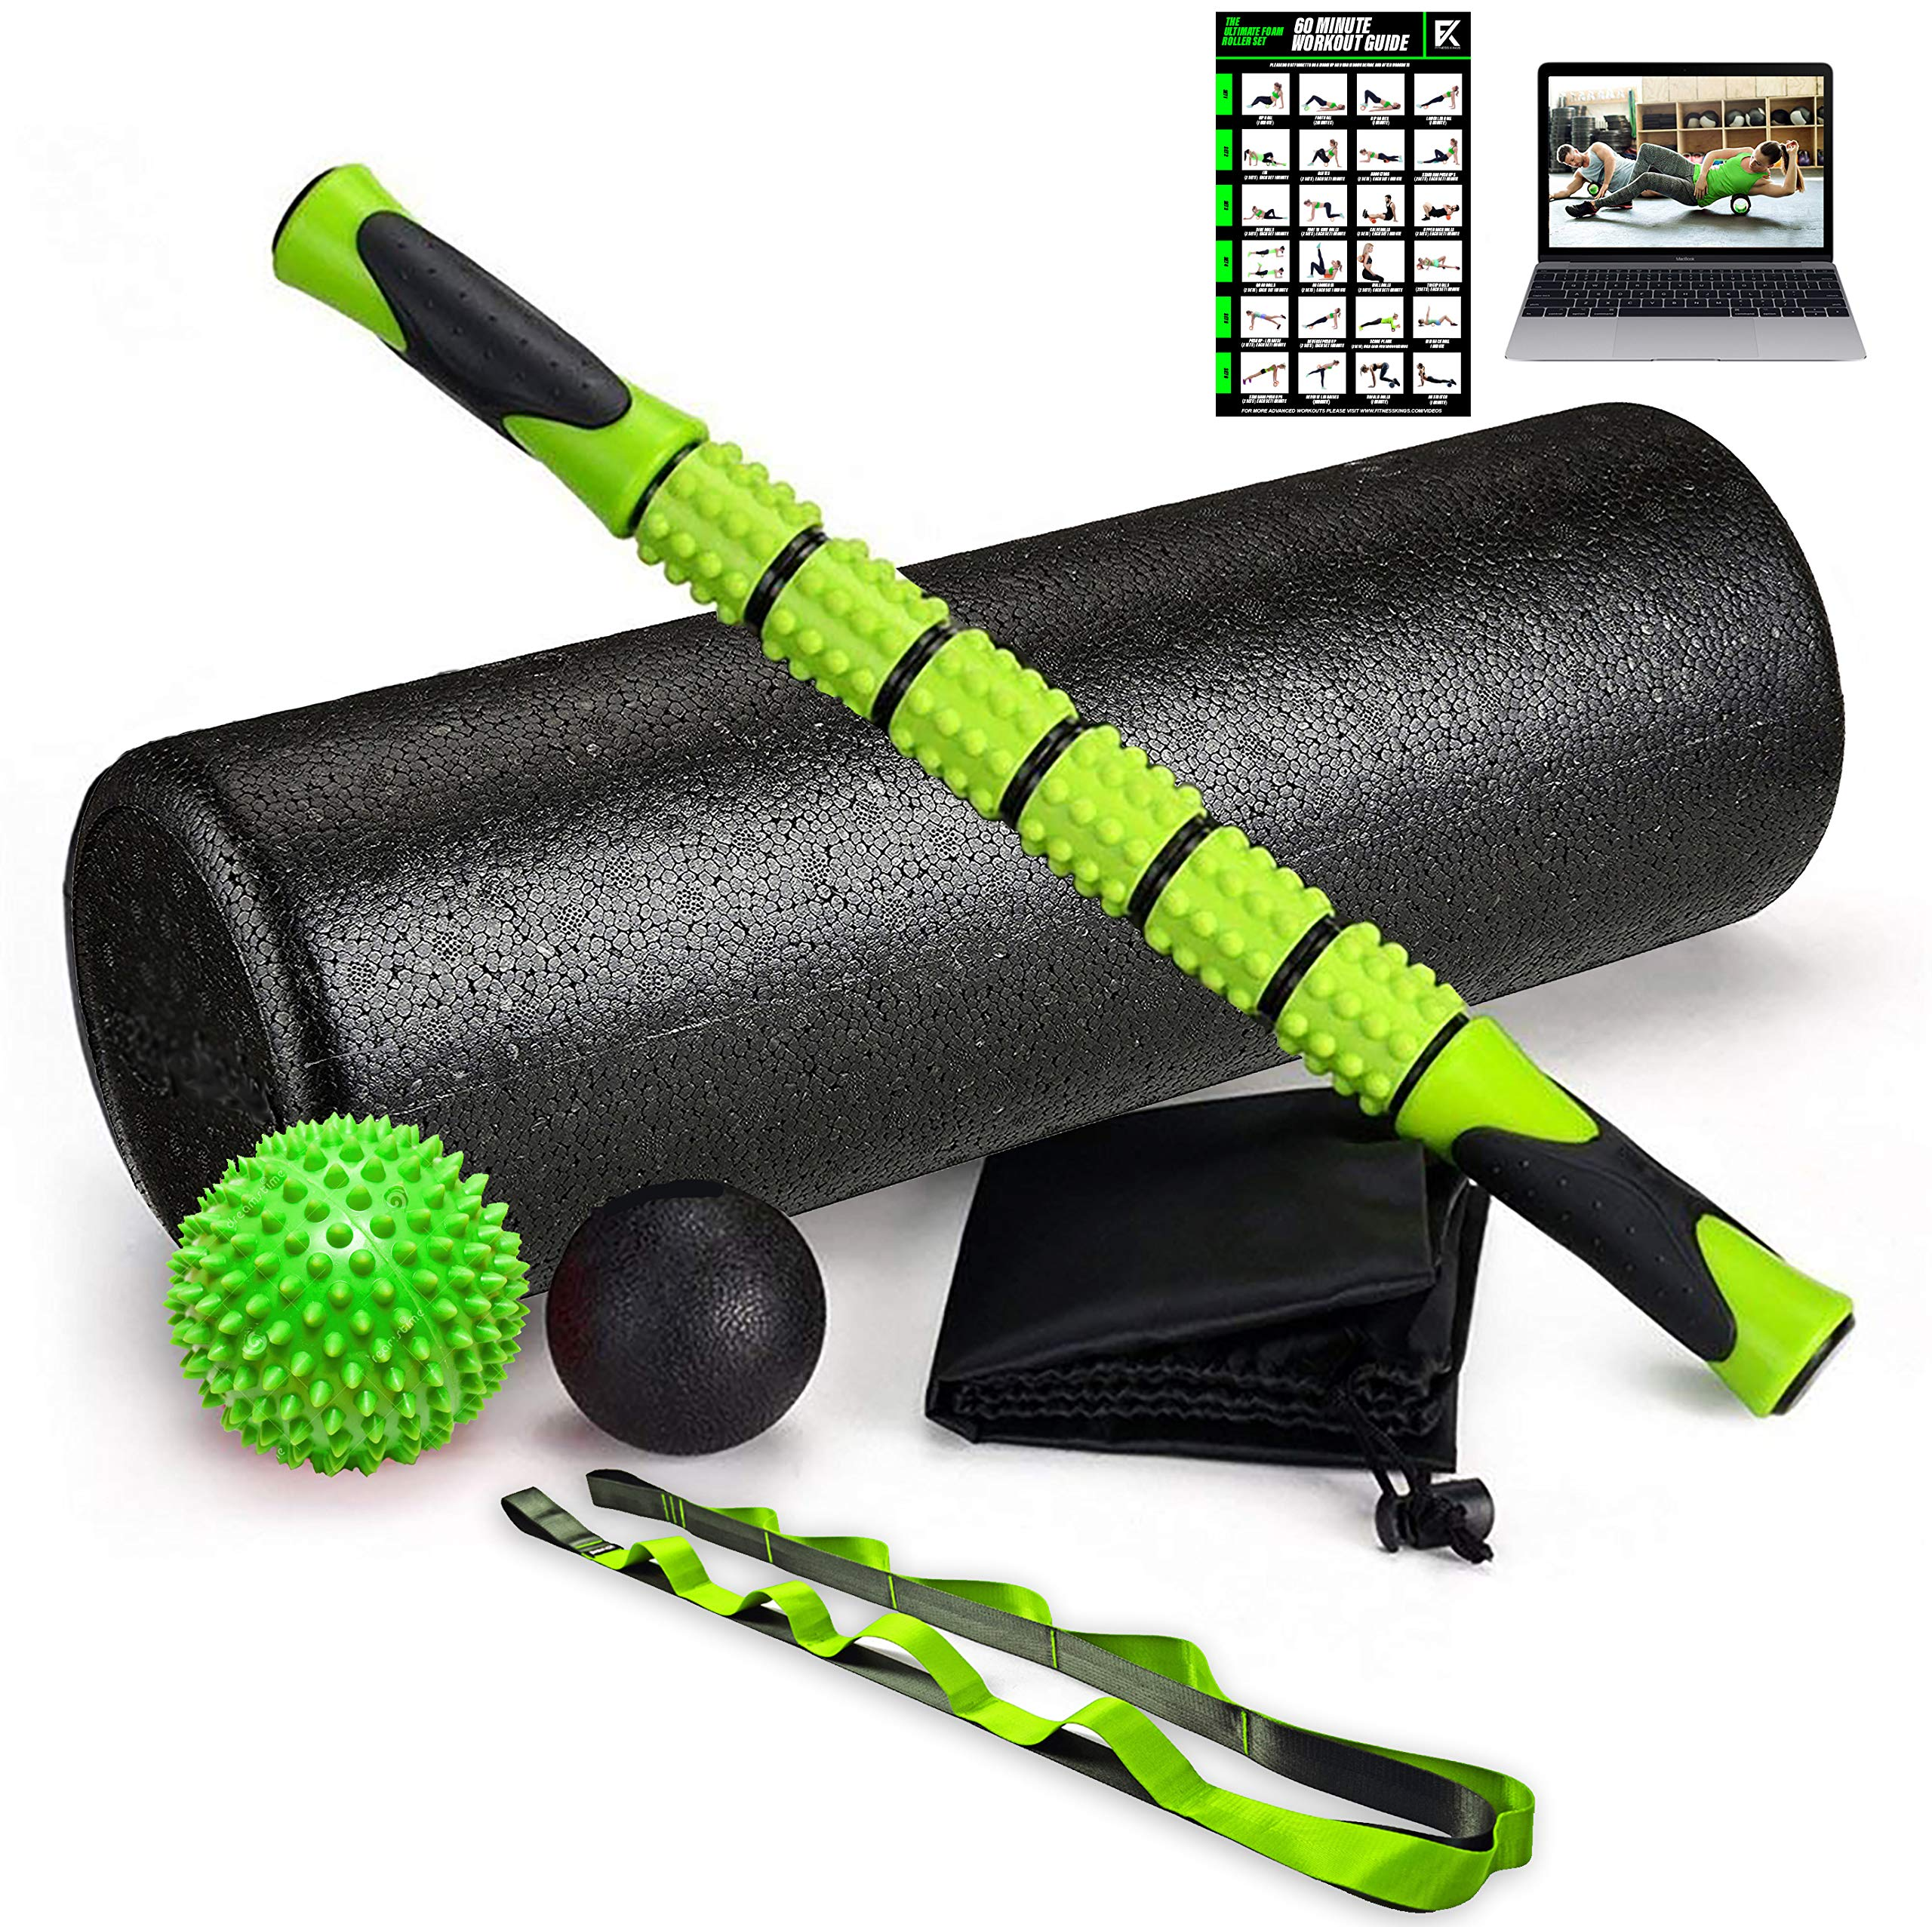 Fitness Kings The Ultimate Foam Roller Set - Large 18'' Foam Exercise Set with Massage Stick, Spiky Massage Ball, Deep Tissue Ball Massager & Yoga Strap - Home Gym Set for Pilates - W/Workout Program